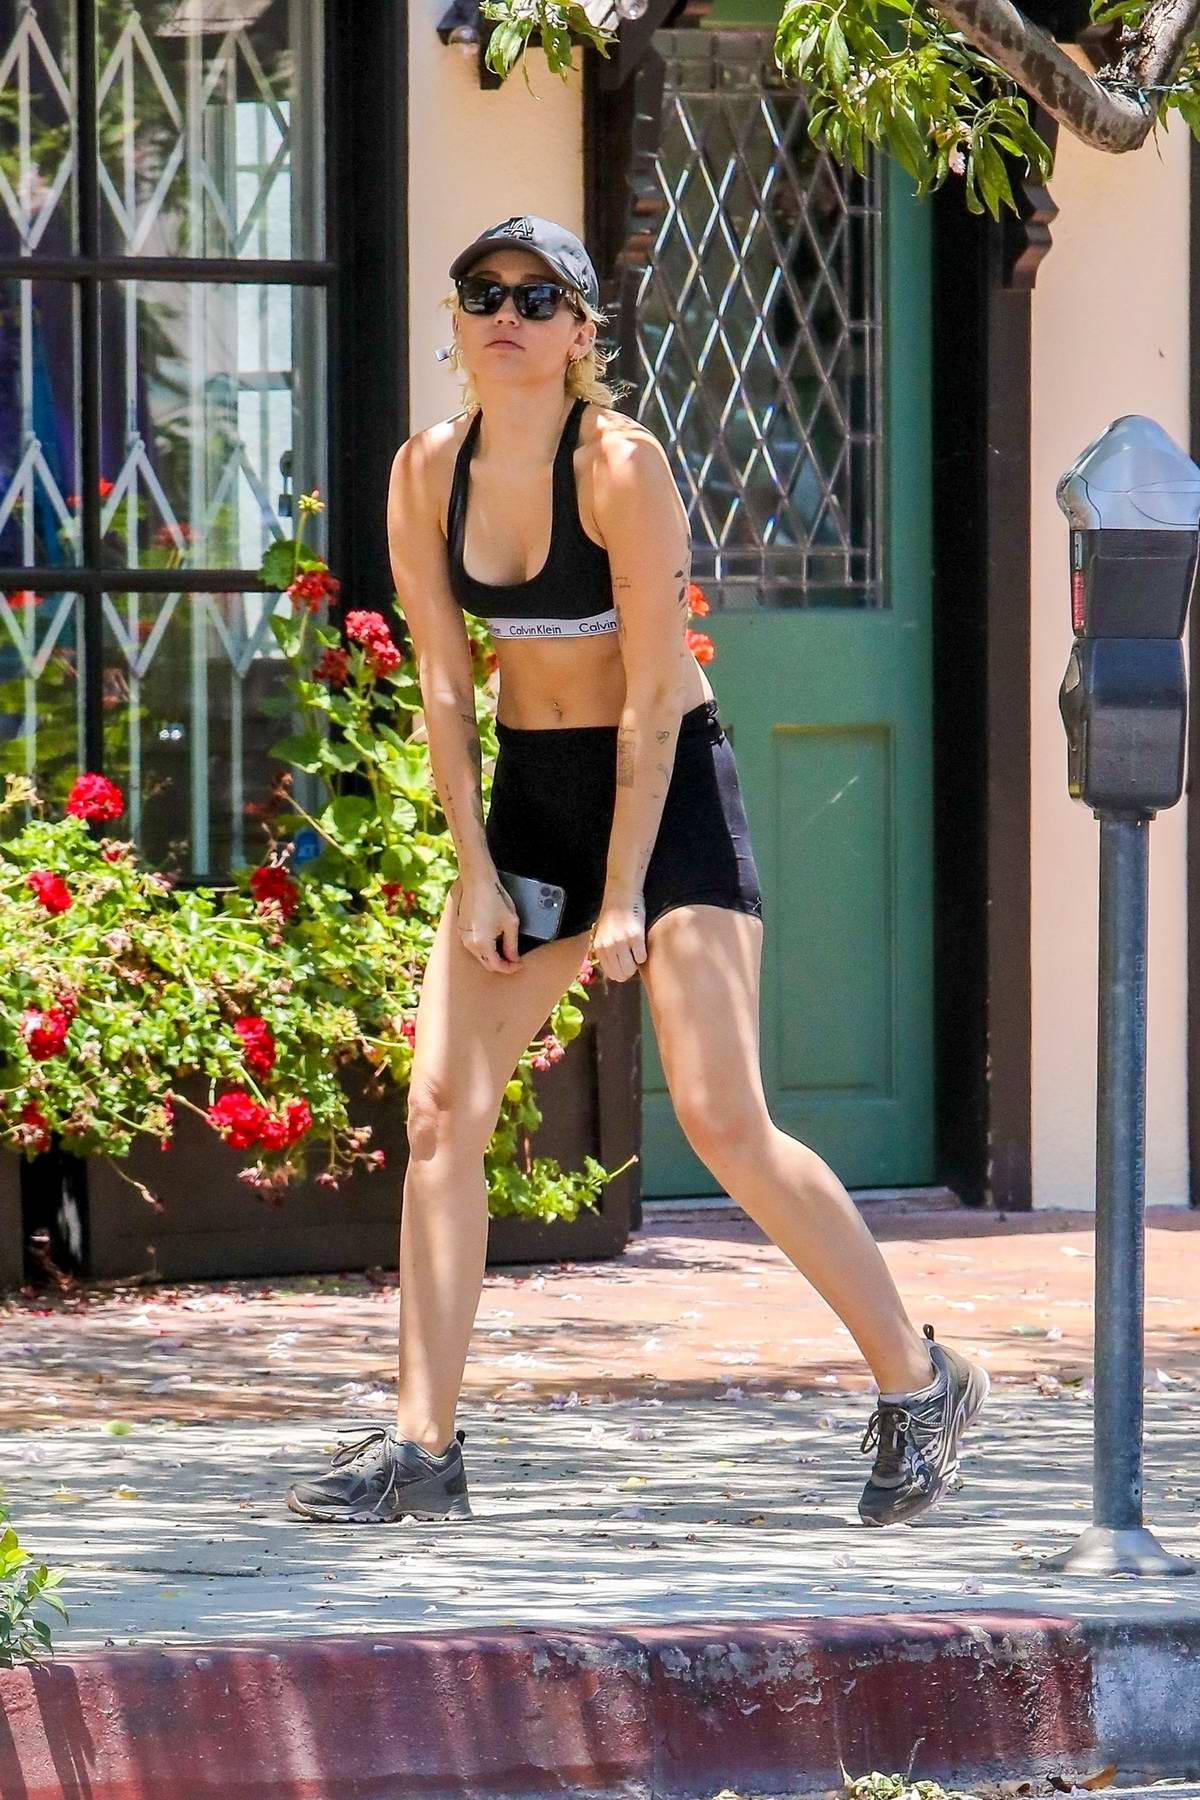 Miley Cyrus displays her toned figure in a crop top and shorts as she goes hiking with Cody Simpson in Los Angeles